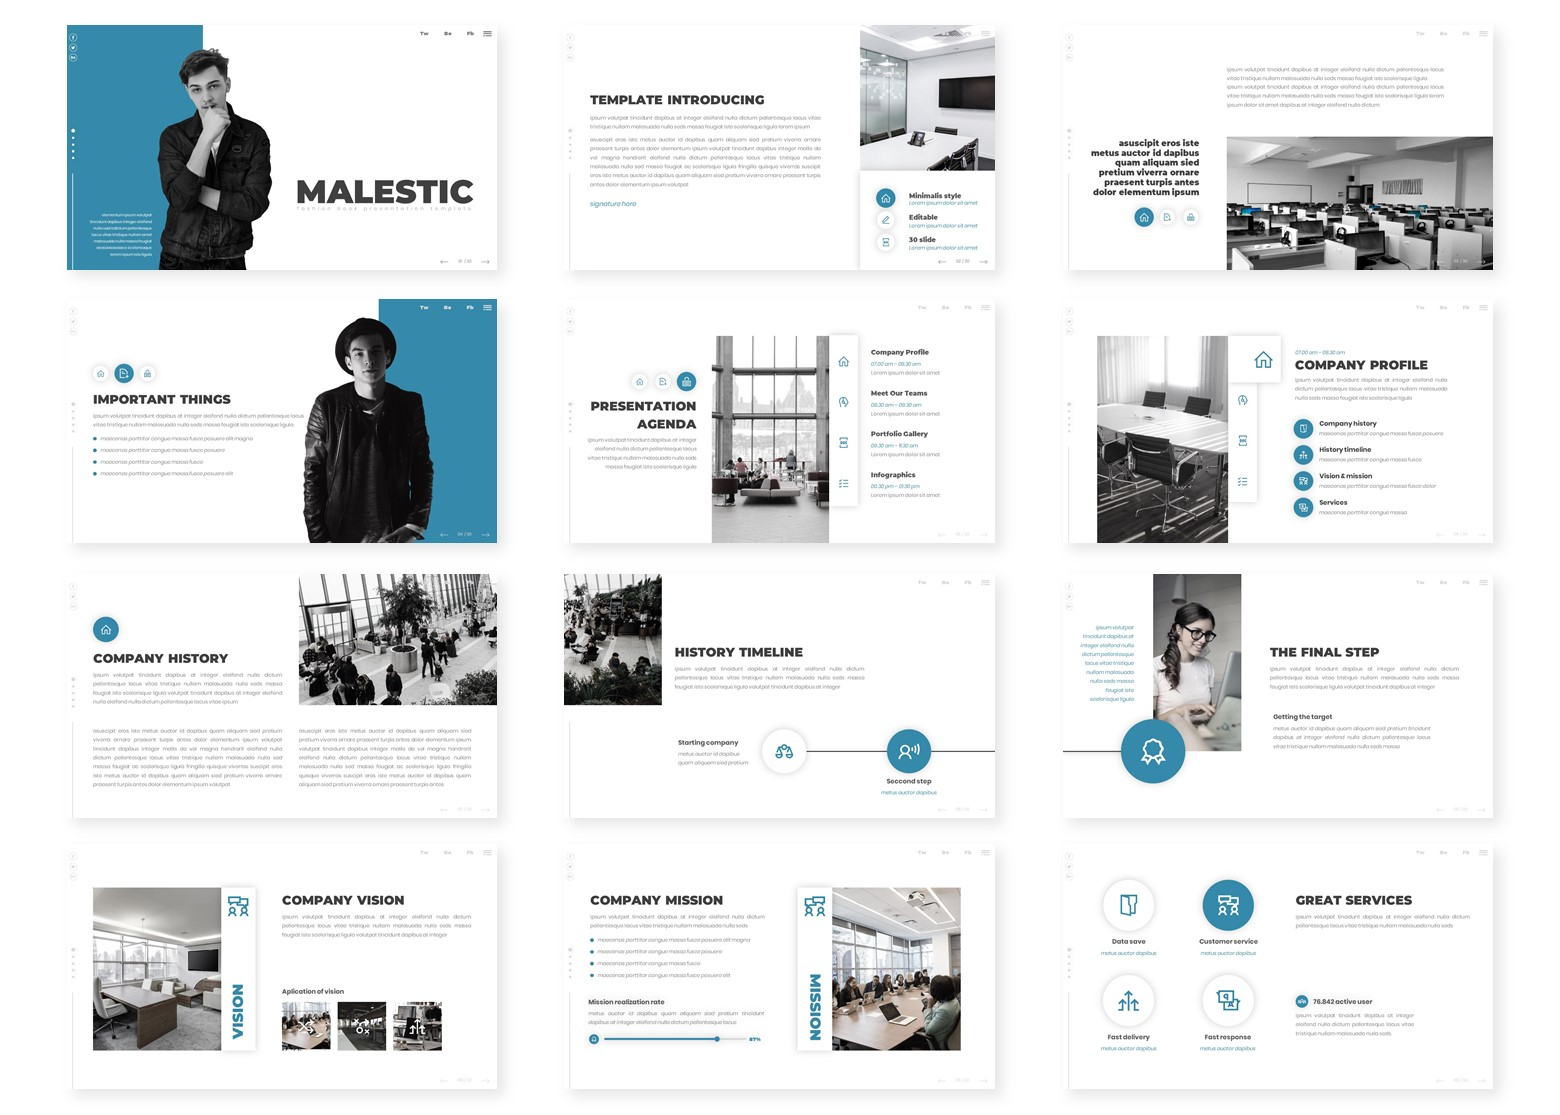 Malestic PowerPoint Template